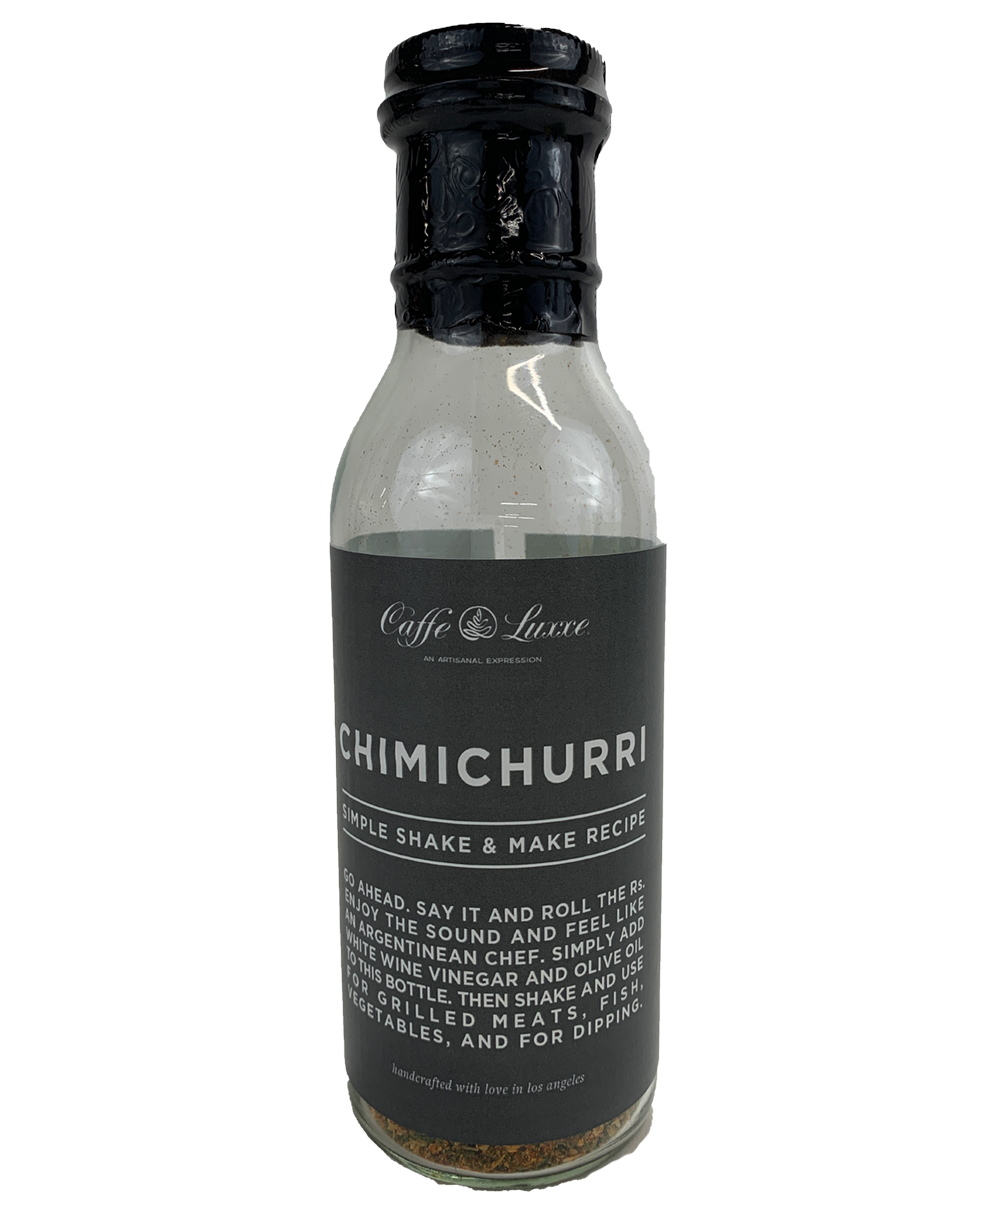 Chimichurri (Individual bottle) - Shake and Make at Home